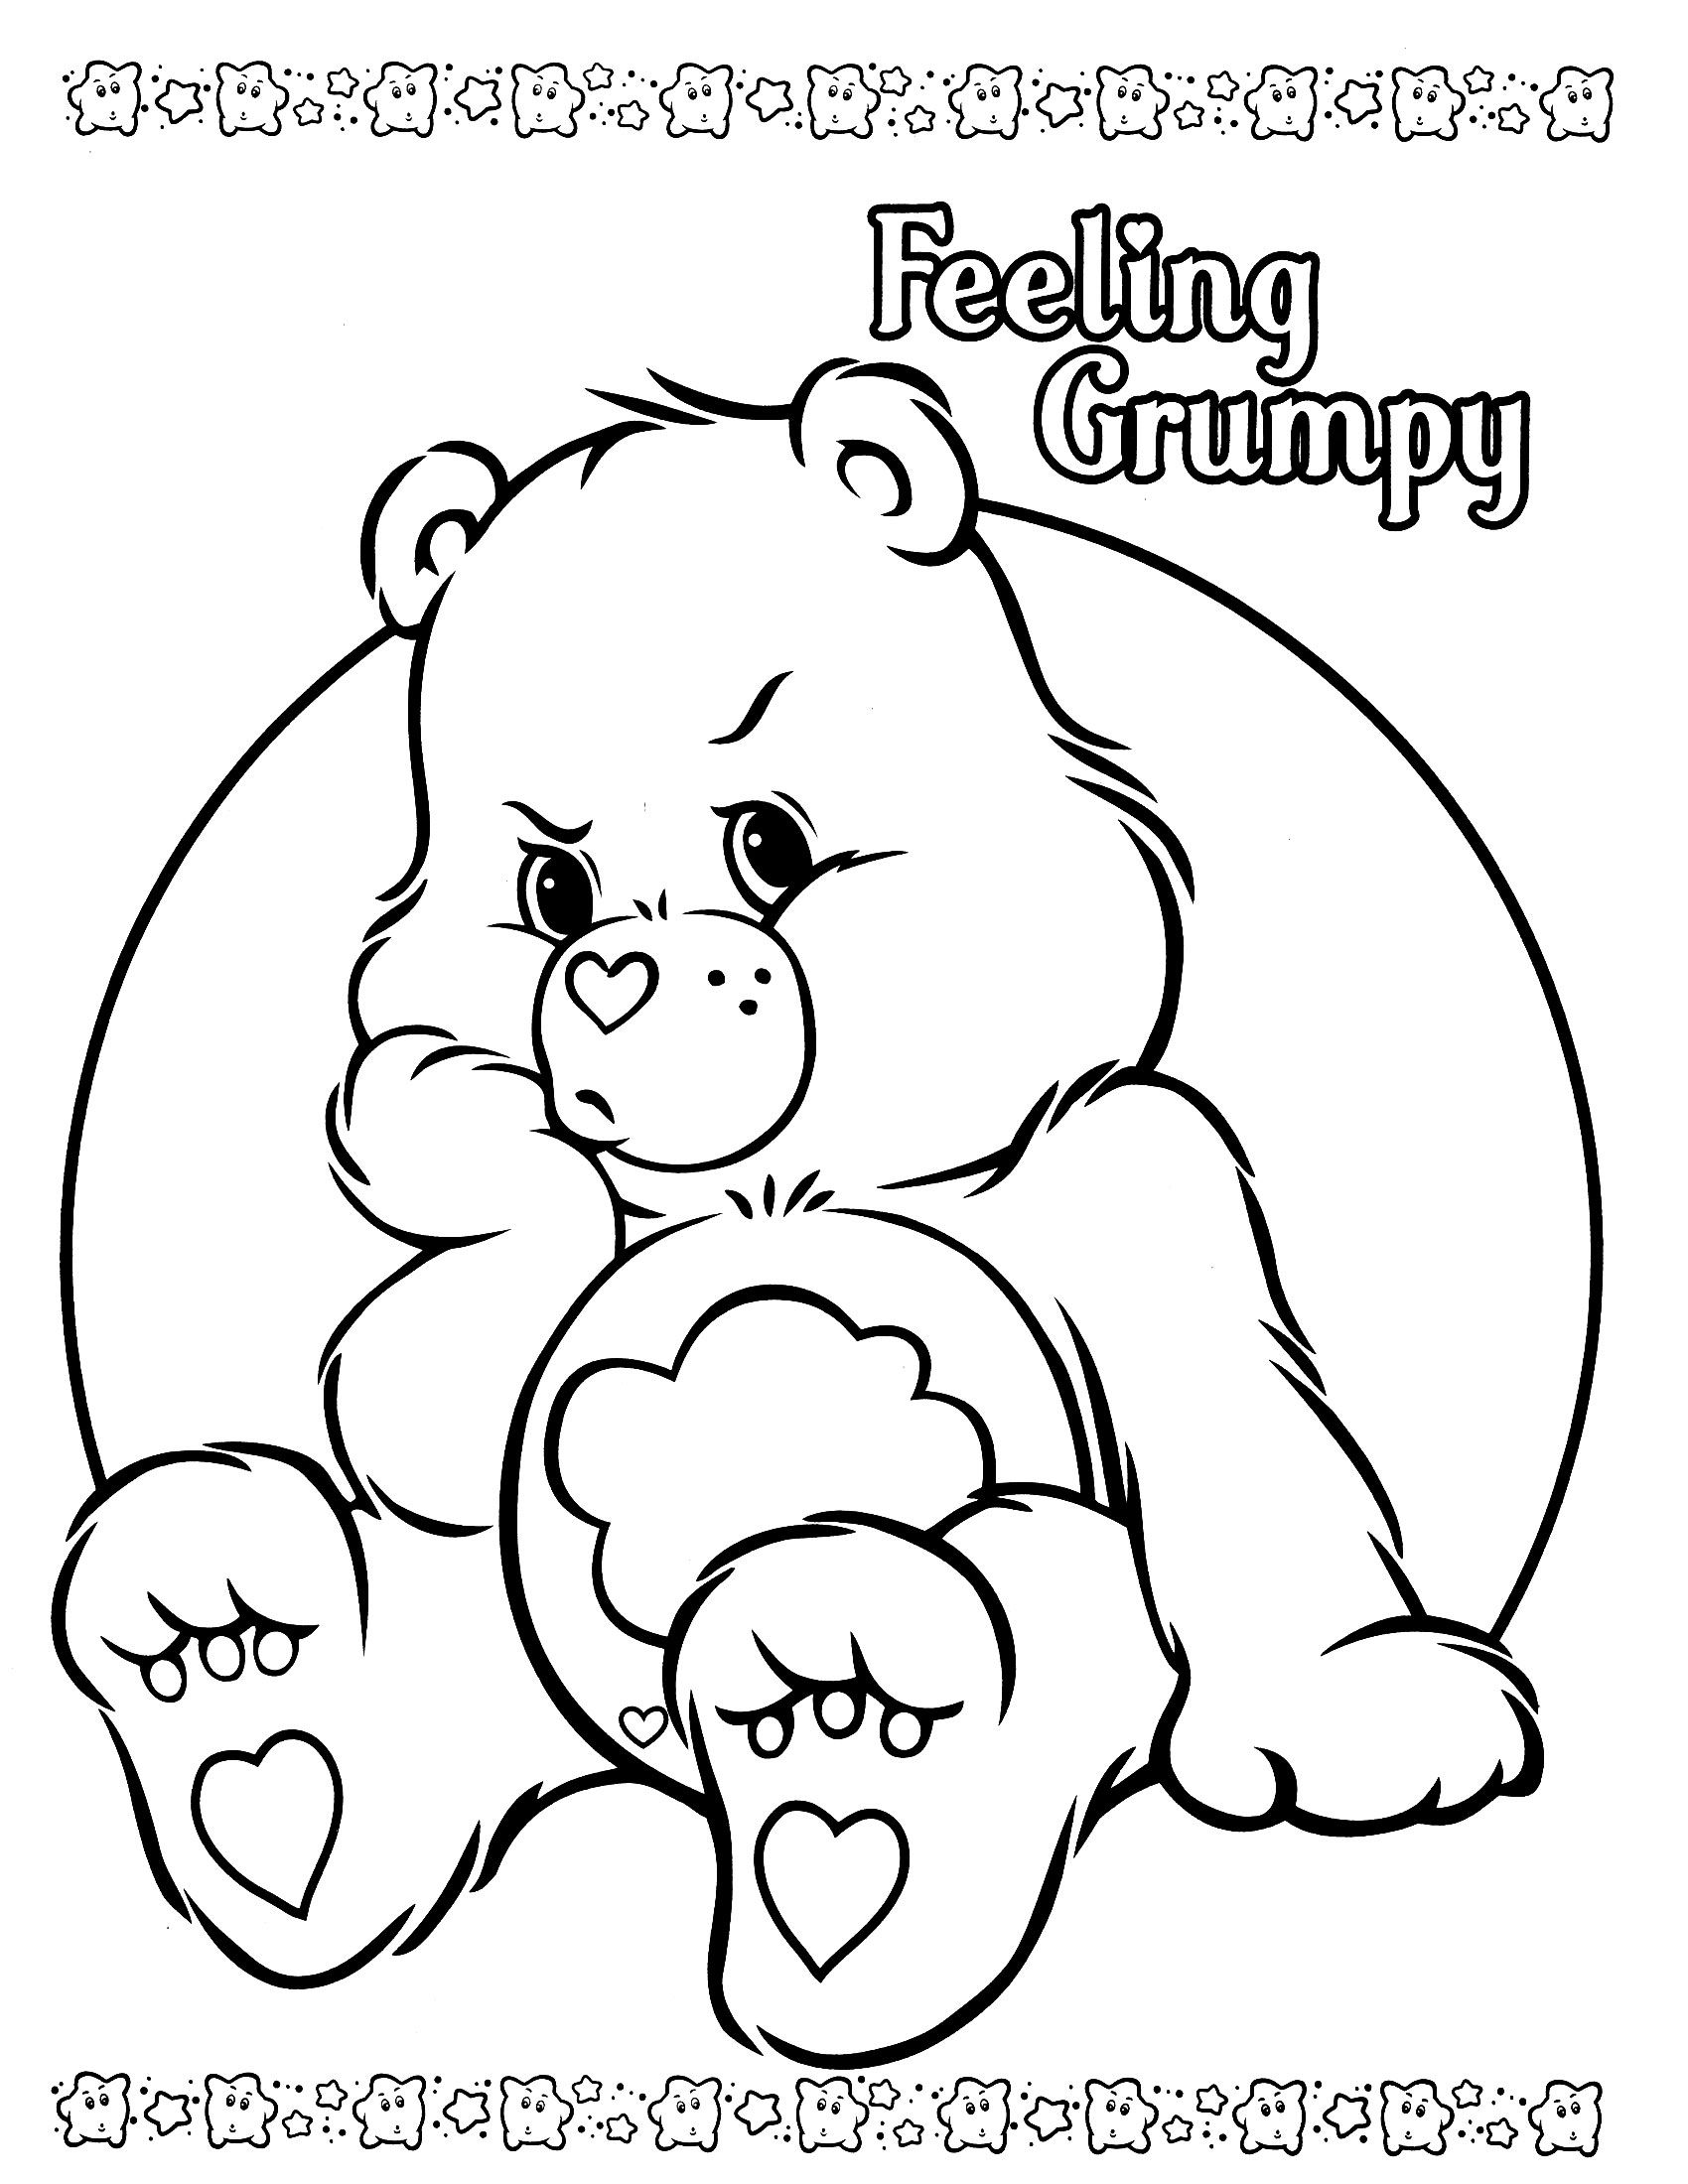 Grumpy Care Bears Coloring Bear Coloring Pages Cute Coloring